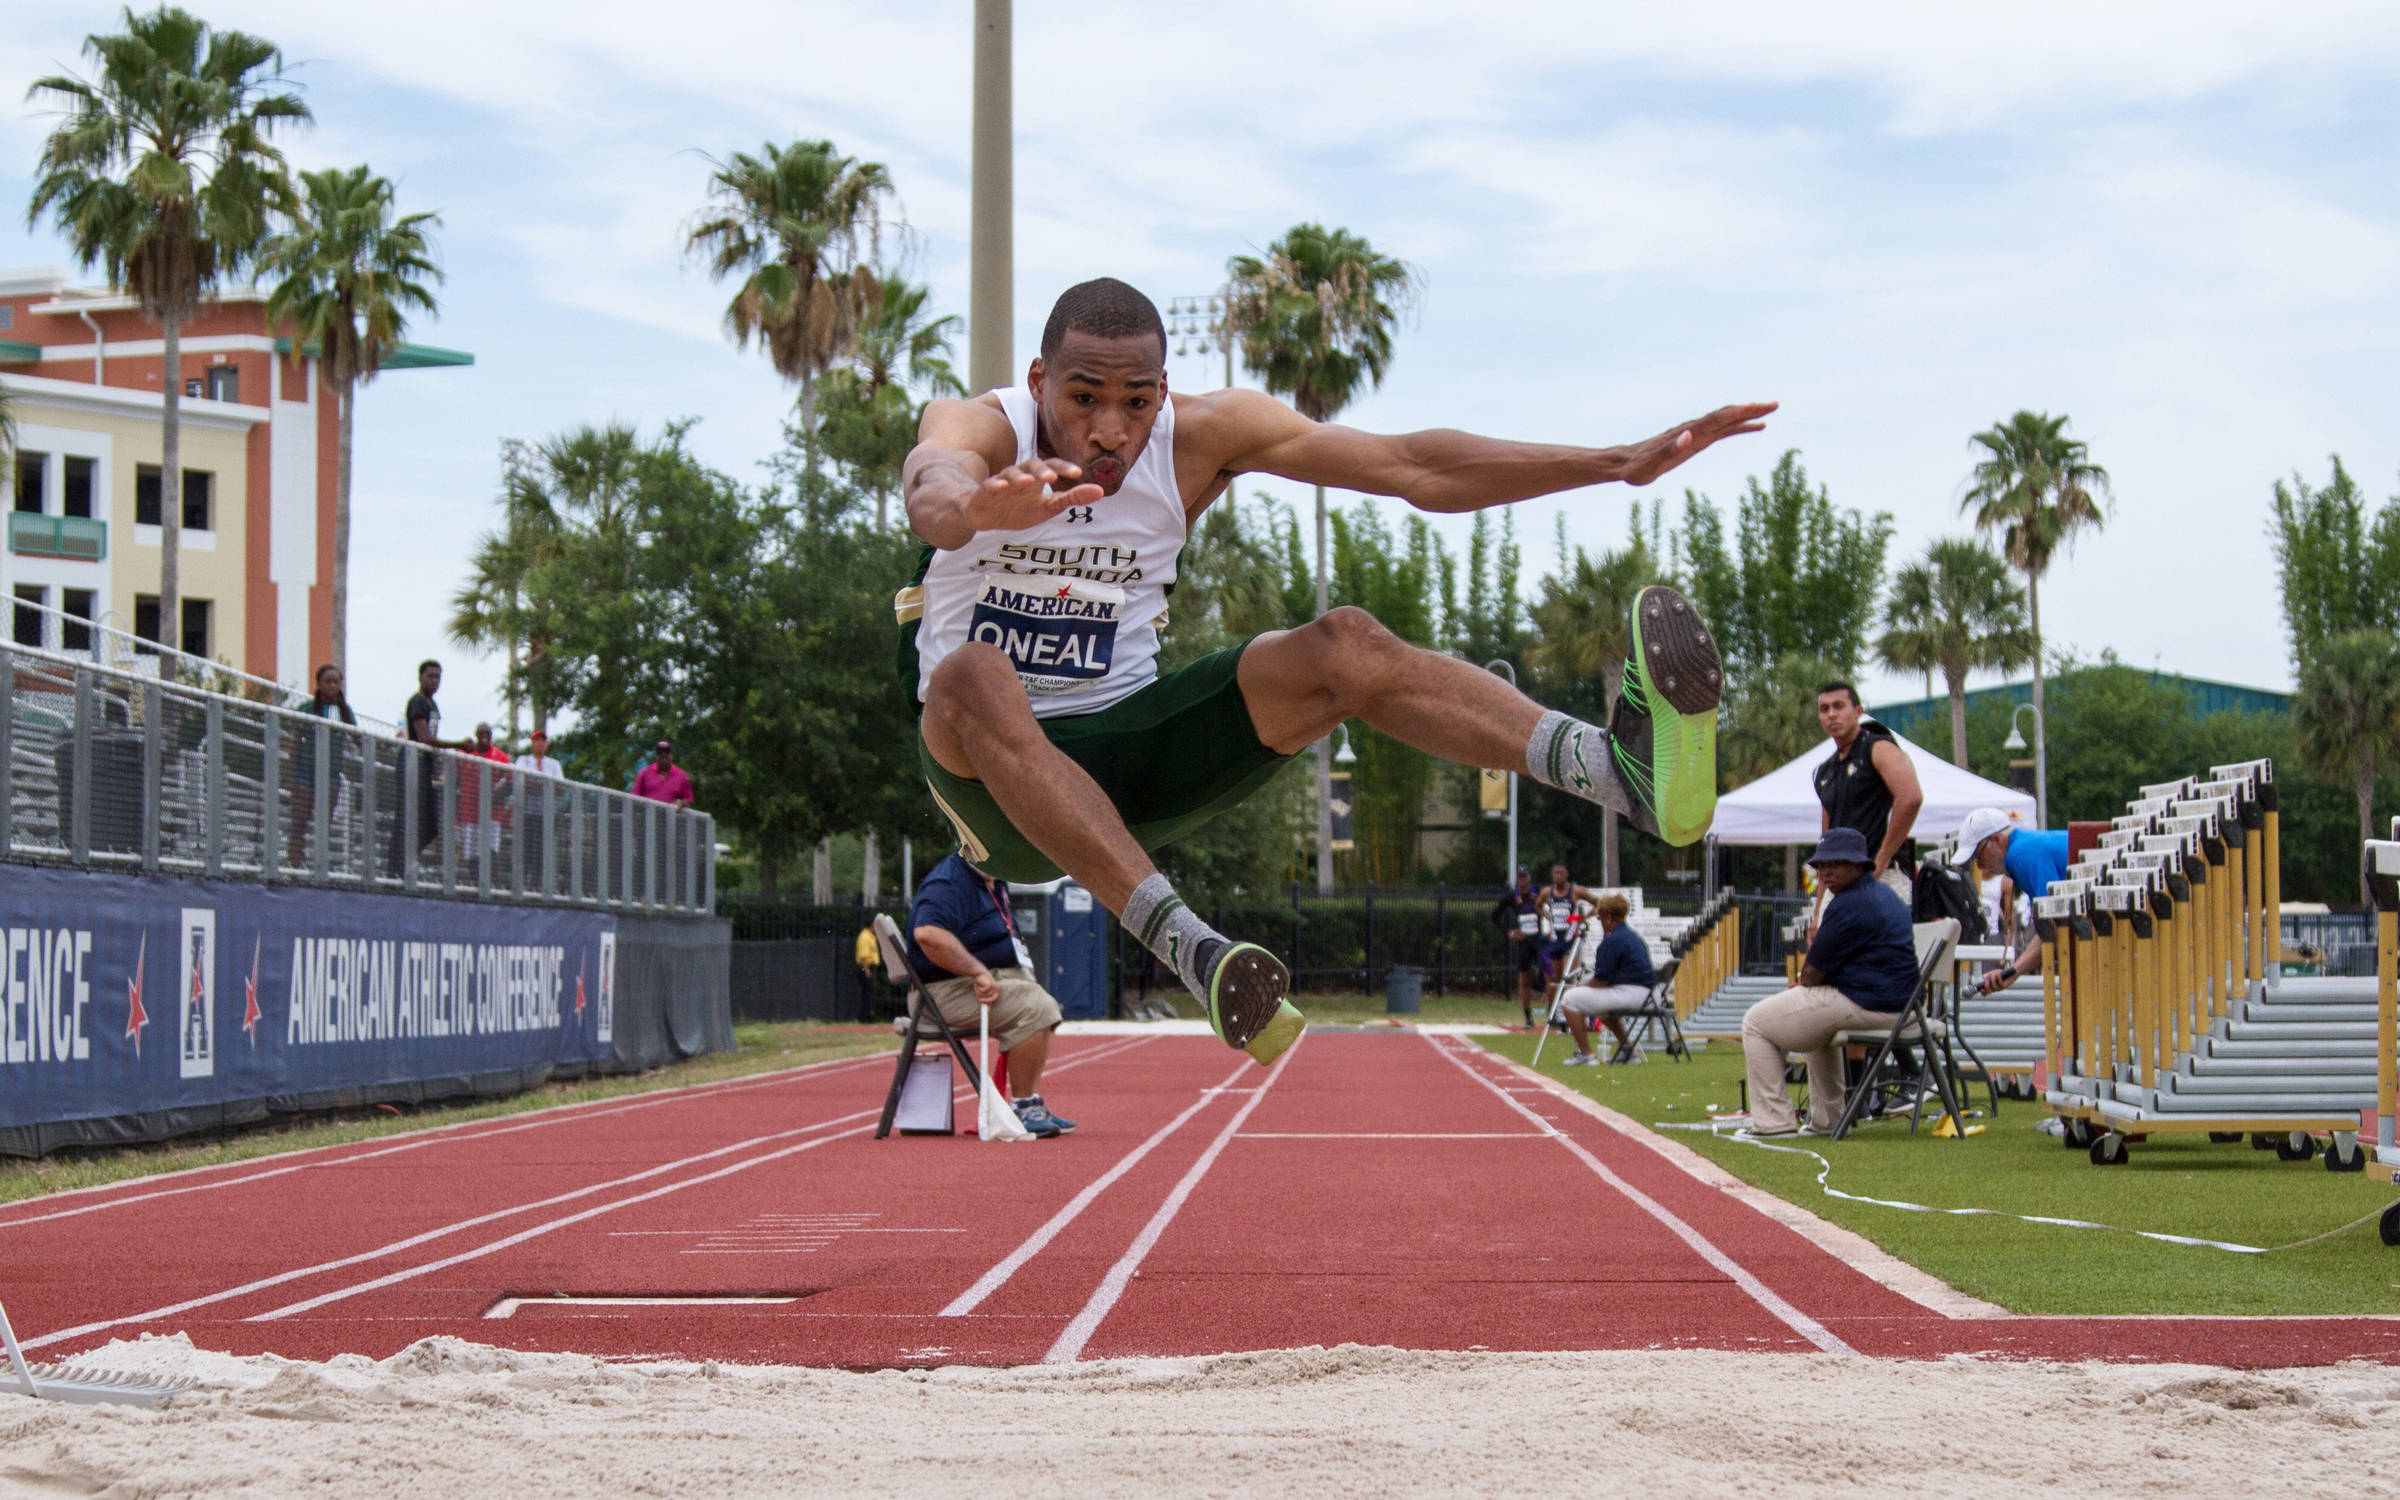 Matthew O'Neal capped off an amazing career with a third place finish at the NCAA Outdoor Championships.